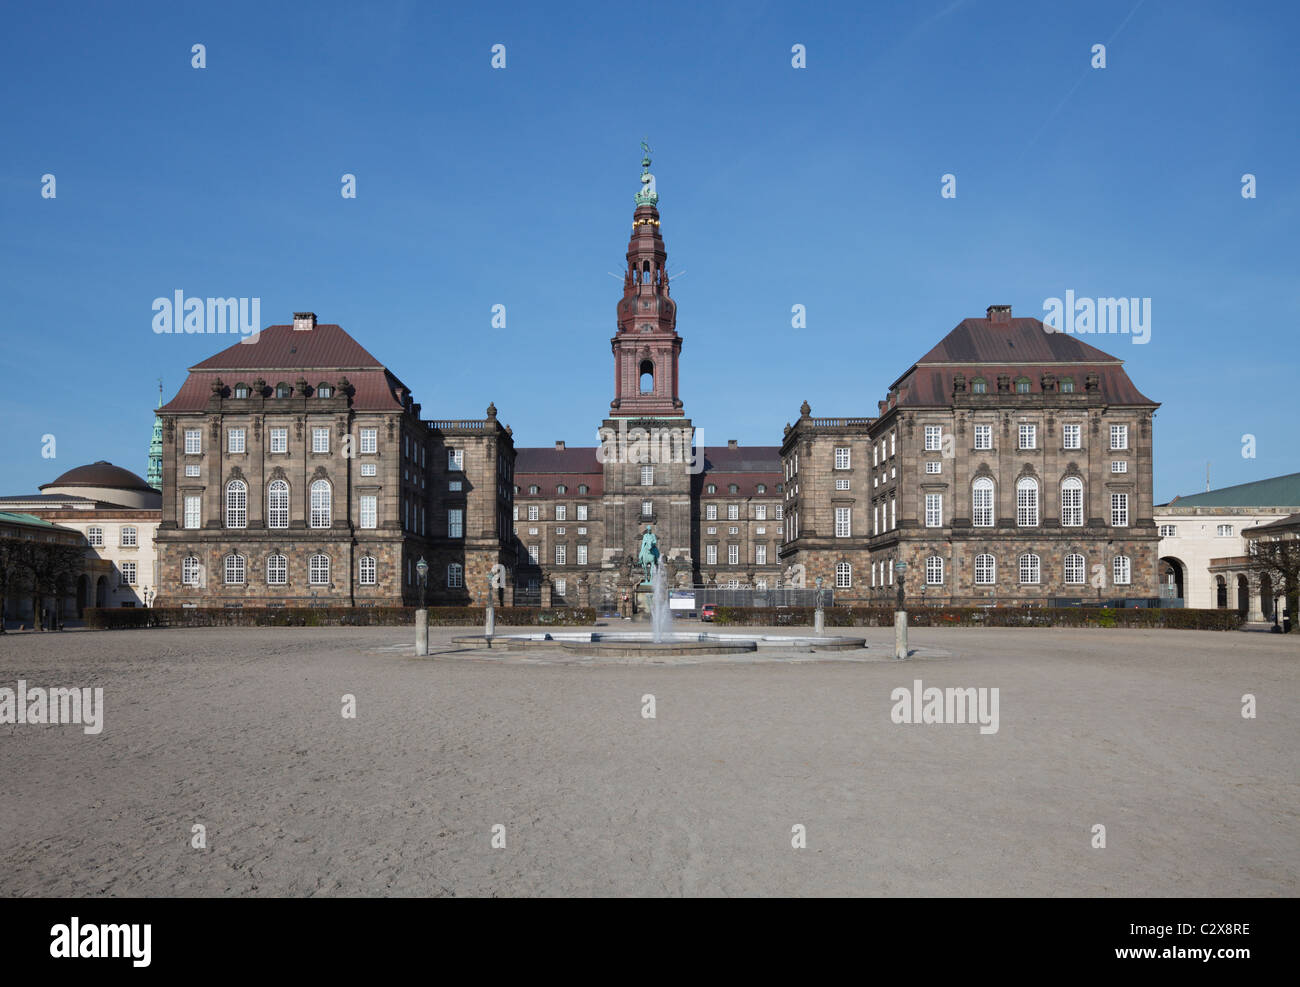 Christiansborg Palace - The Danish Parliament building in Copenhagen, Denmark - home of the Folketinget, seen from - Stock Image